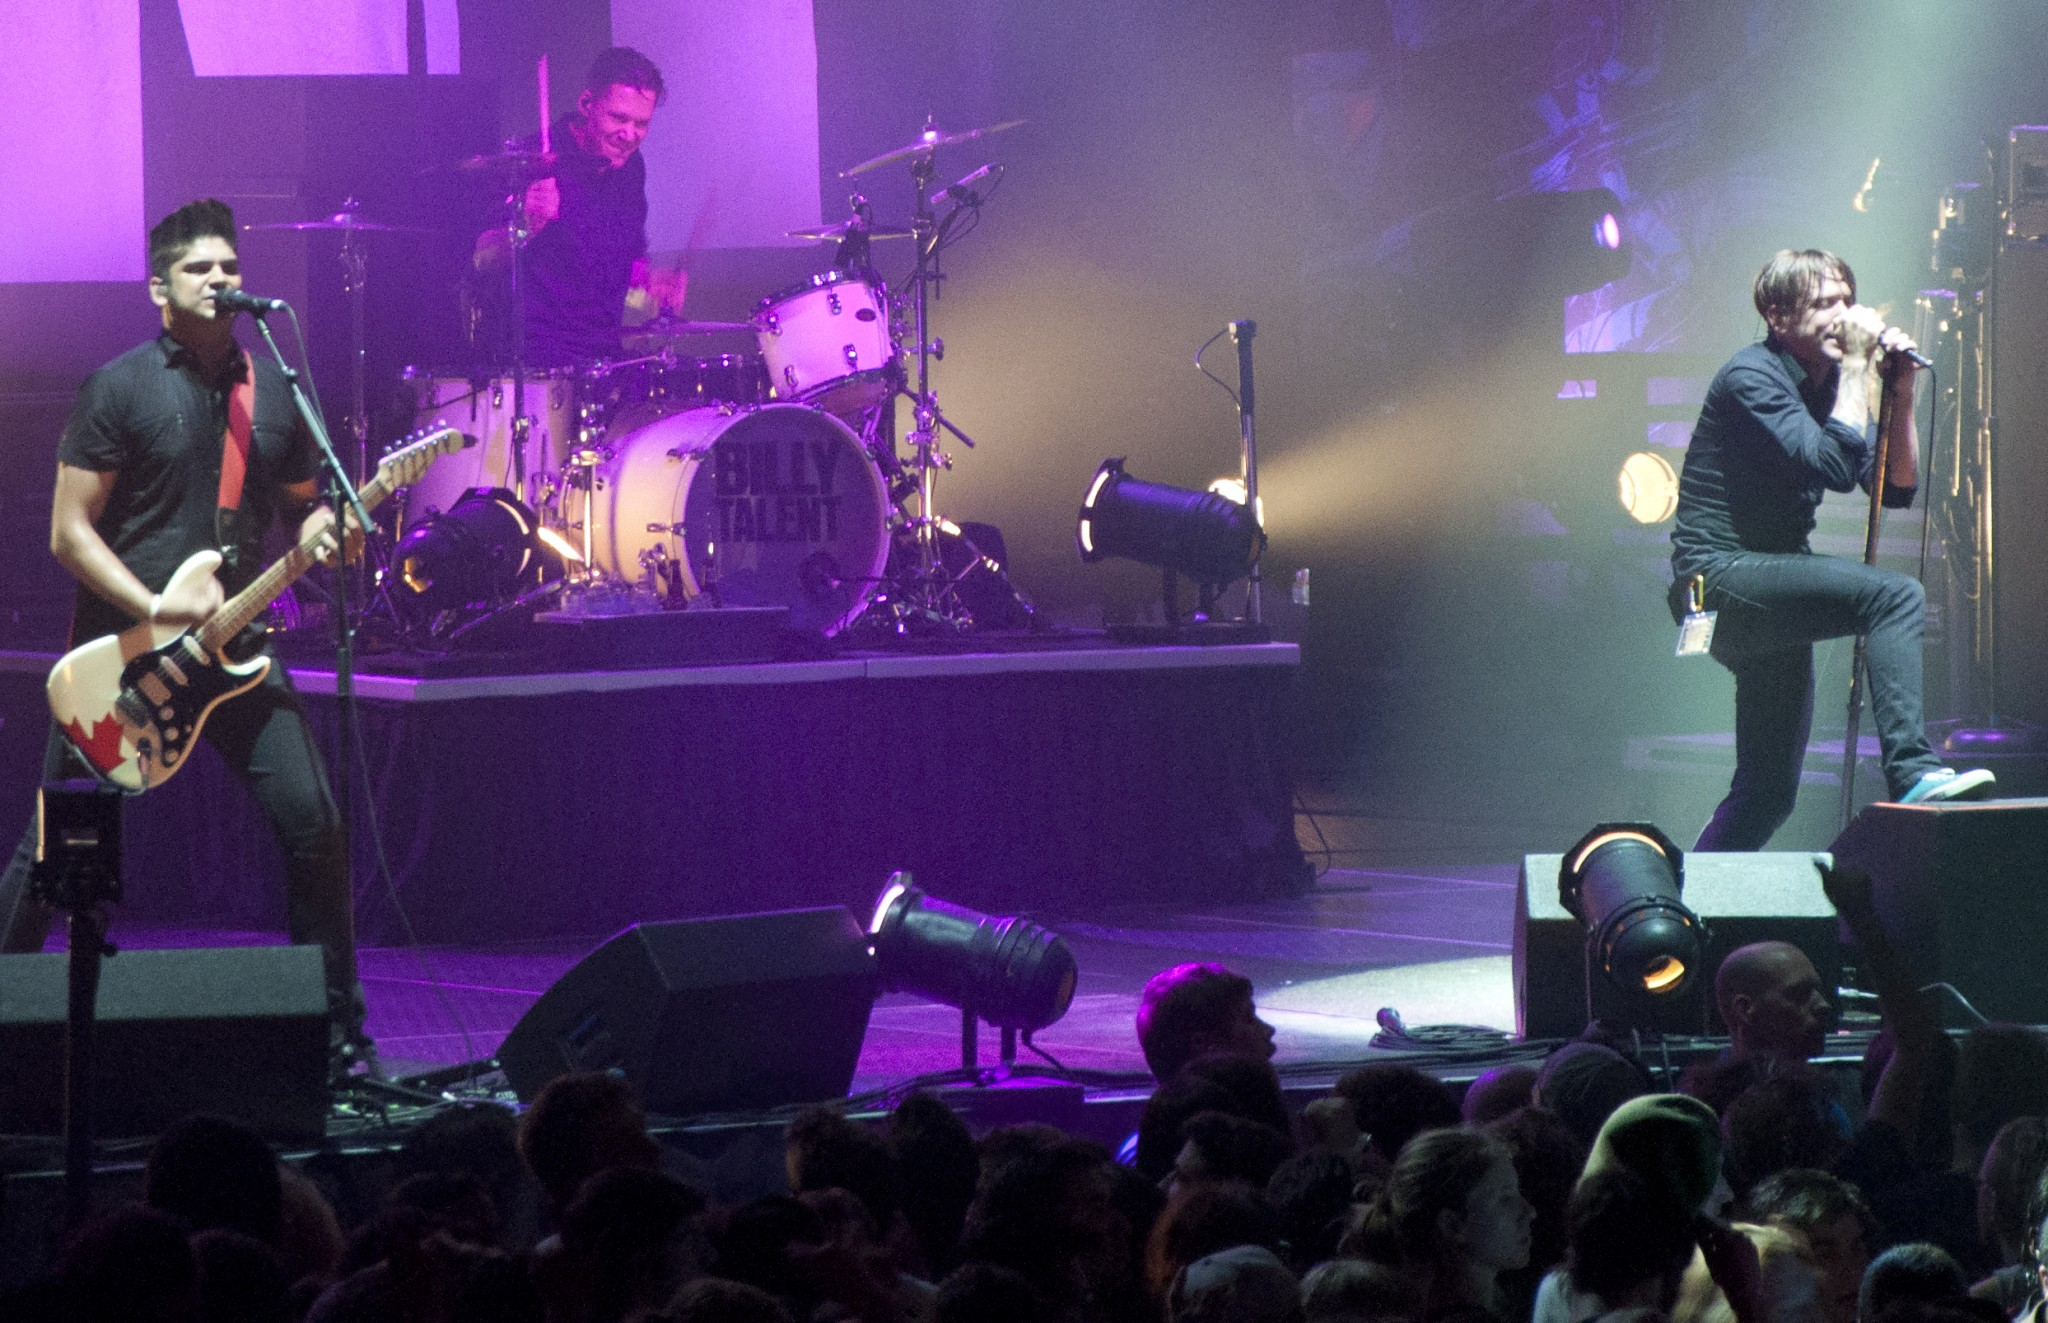 Billy Talent headed a four band all-Canadian punk rock arena show. - PHOTO BY JESS BUICK